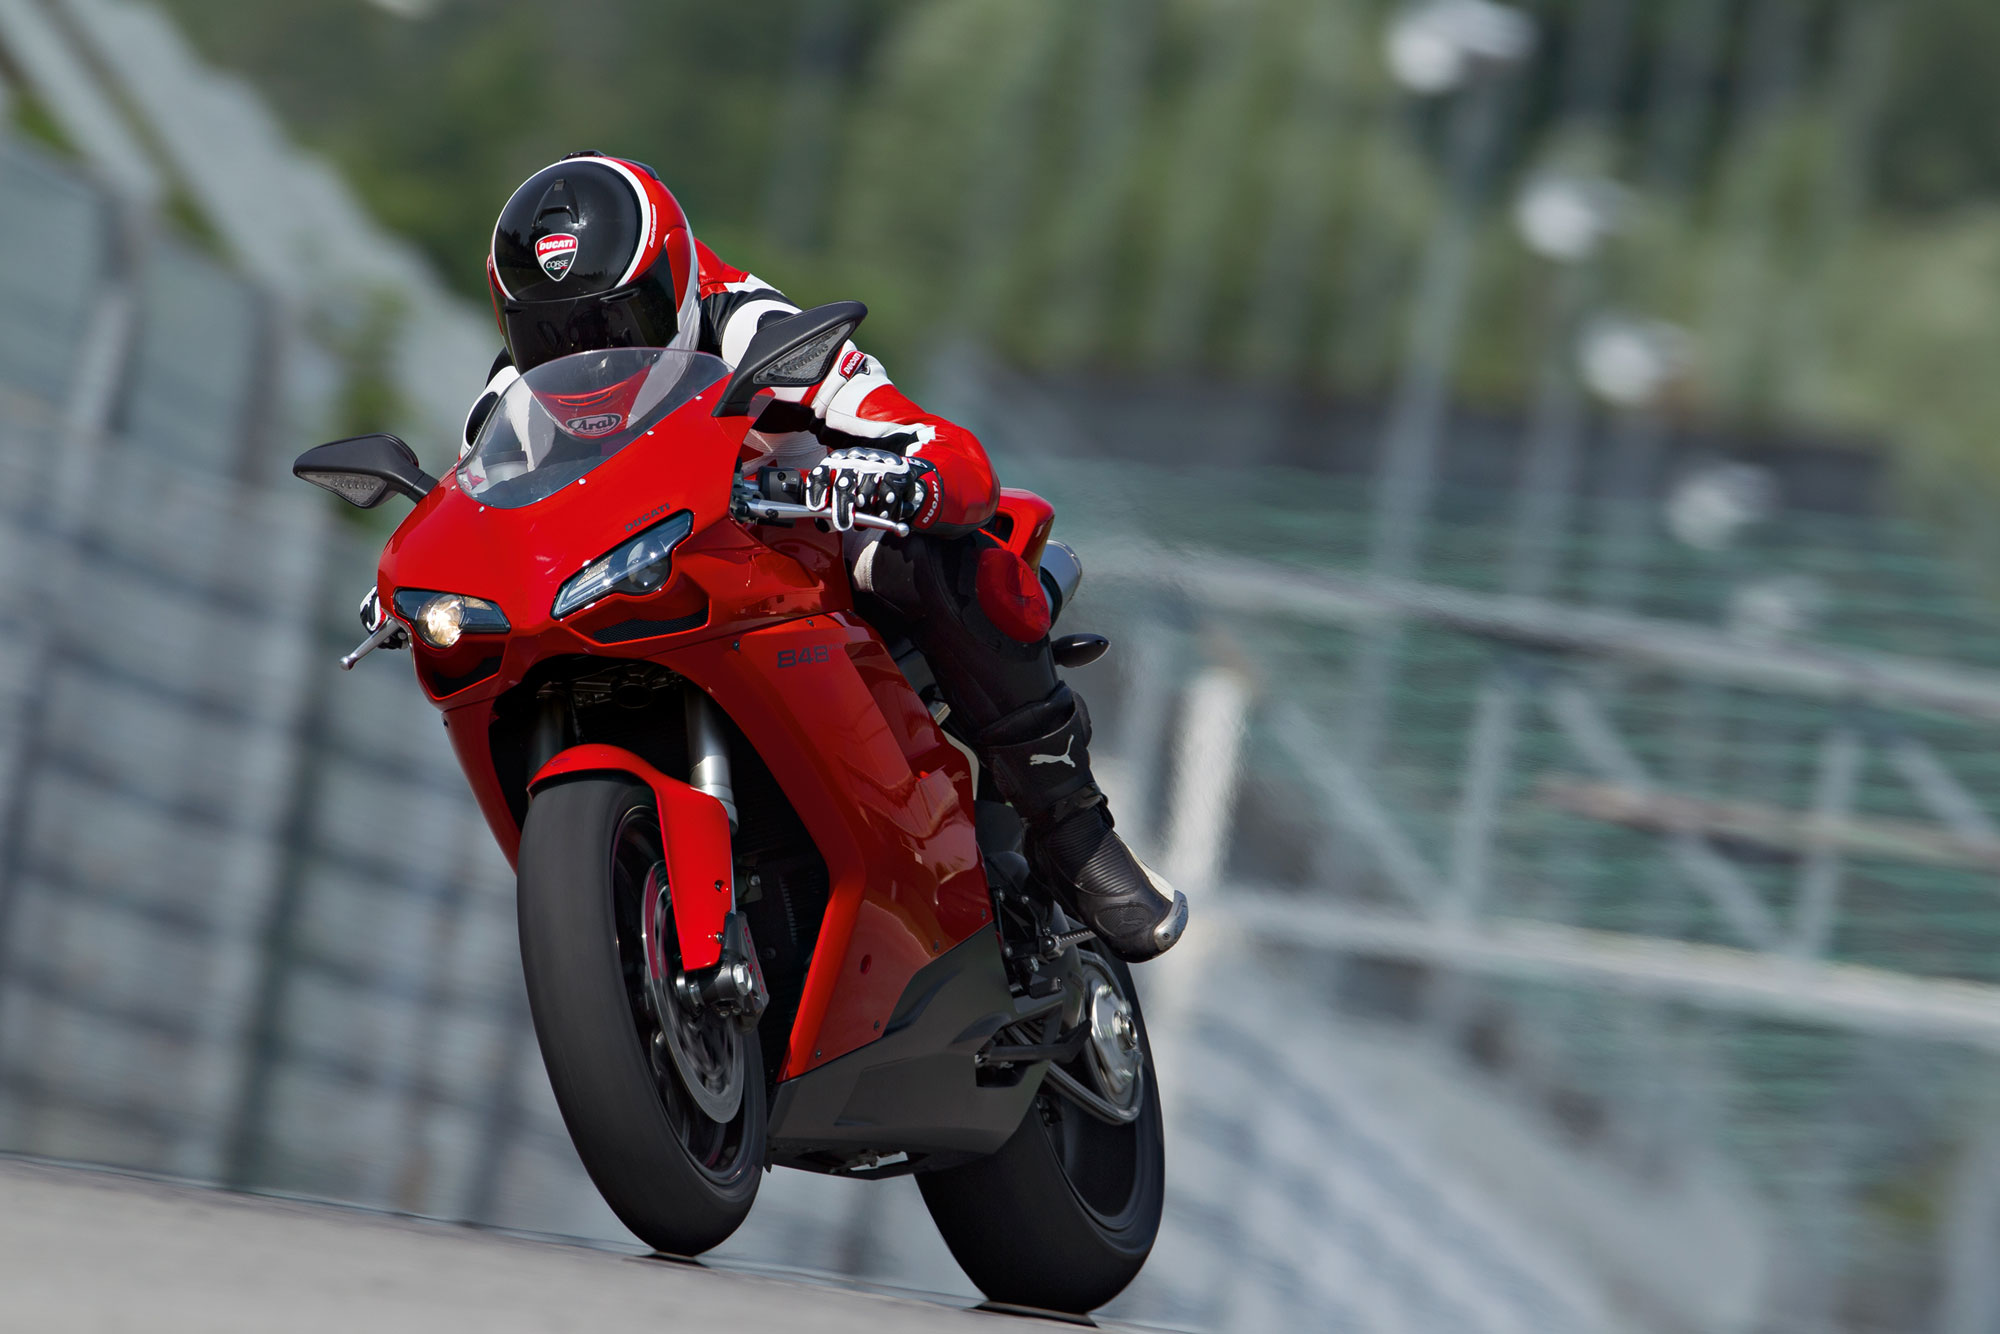 2013 Ducati Superbike 848 EVO Review